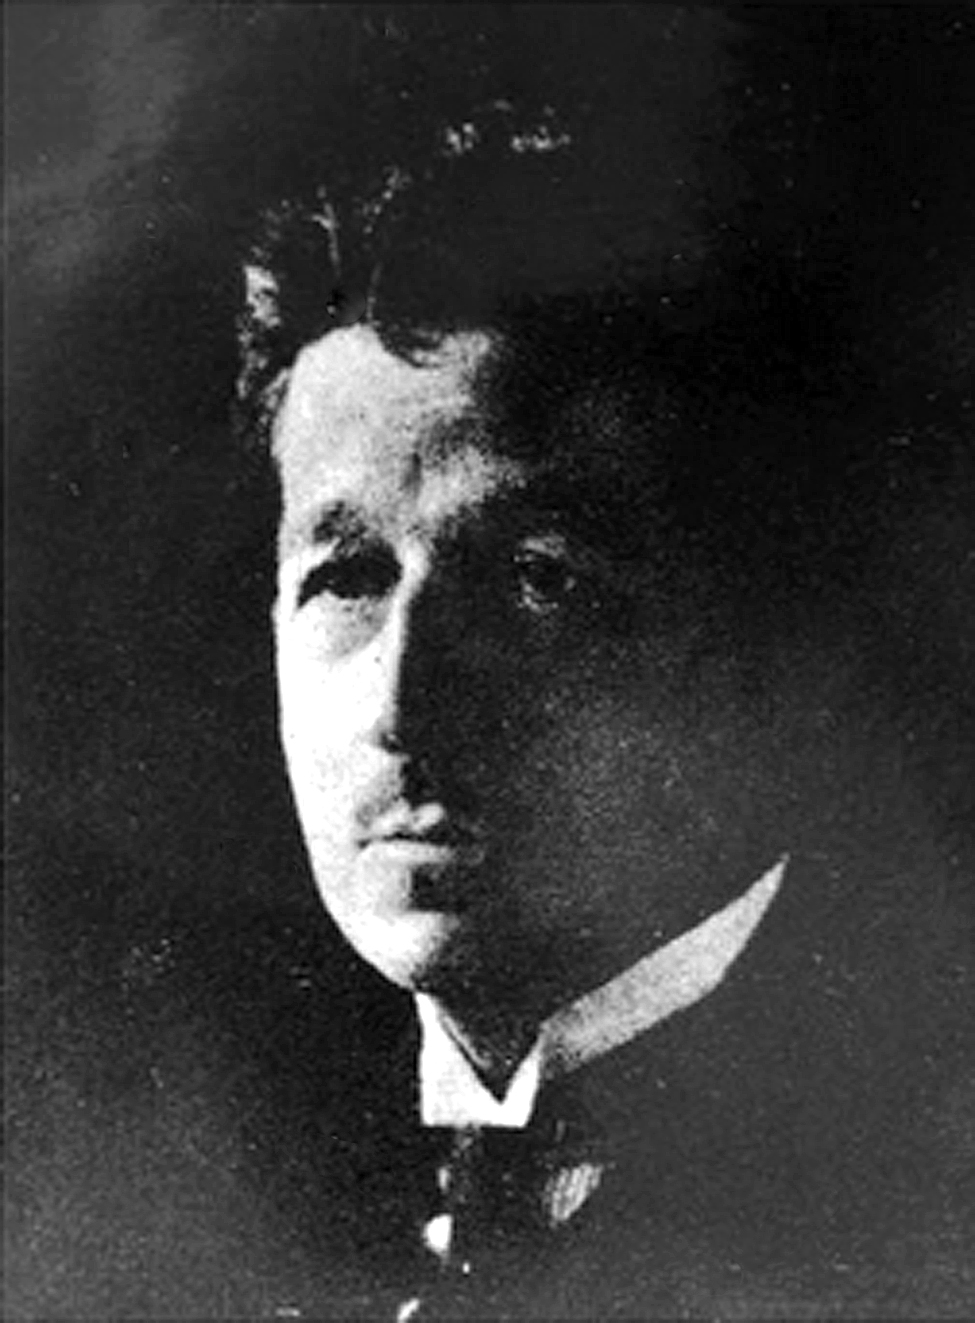 Dr Edmond Locard (photo c. 1915). From: https://de.wikipedia.org/wiki/Edmond_Locard